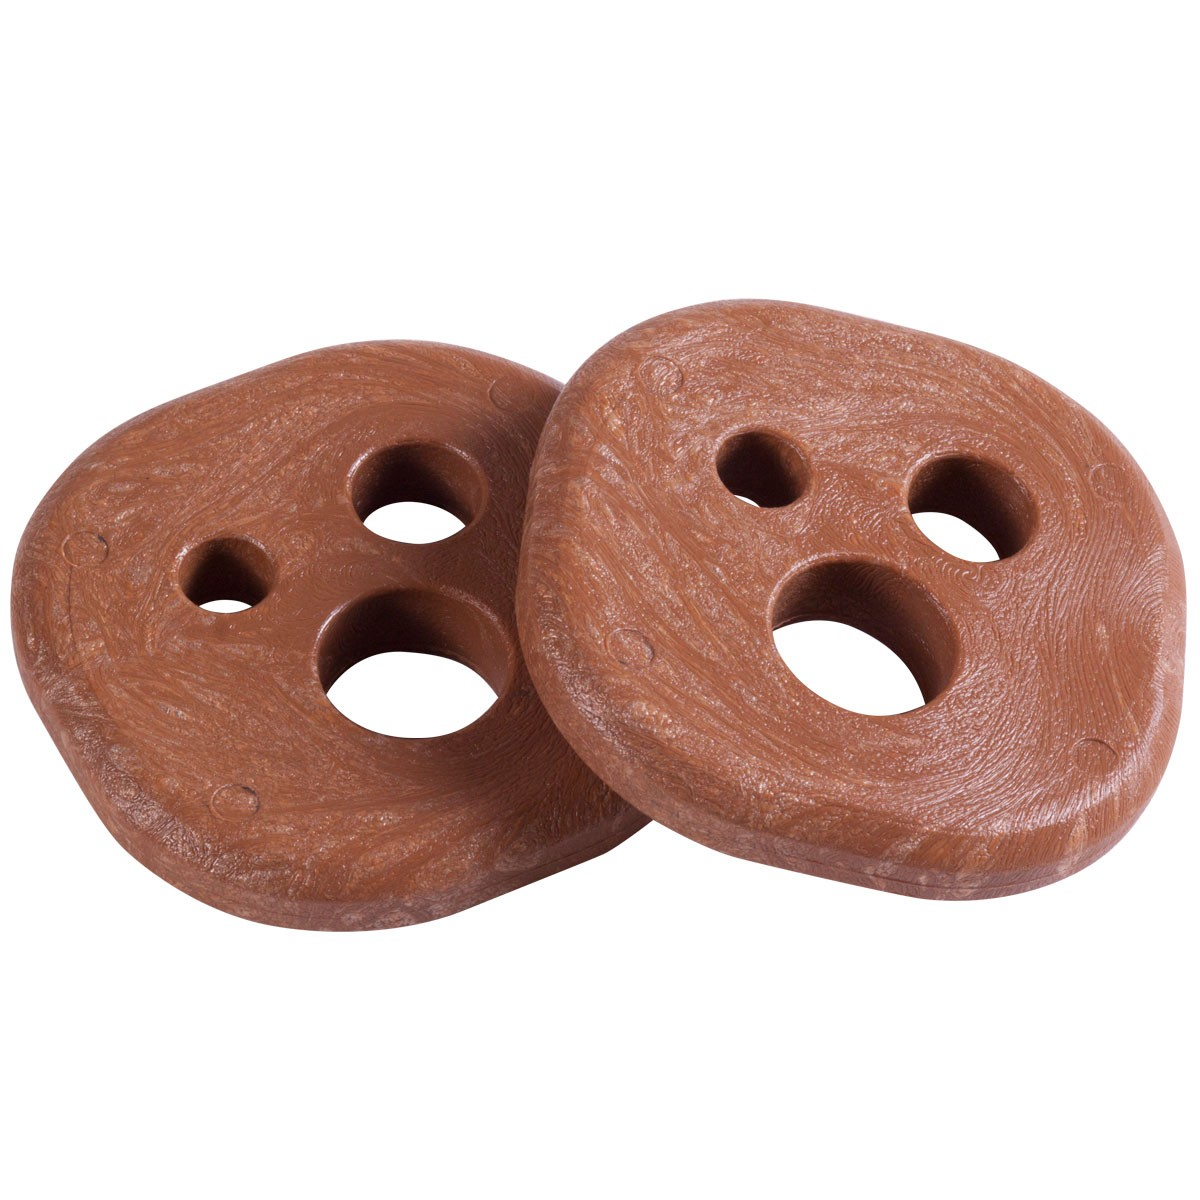 Holesom Scented Slide Pucks - Cocoa Butter